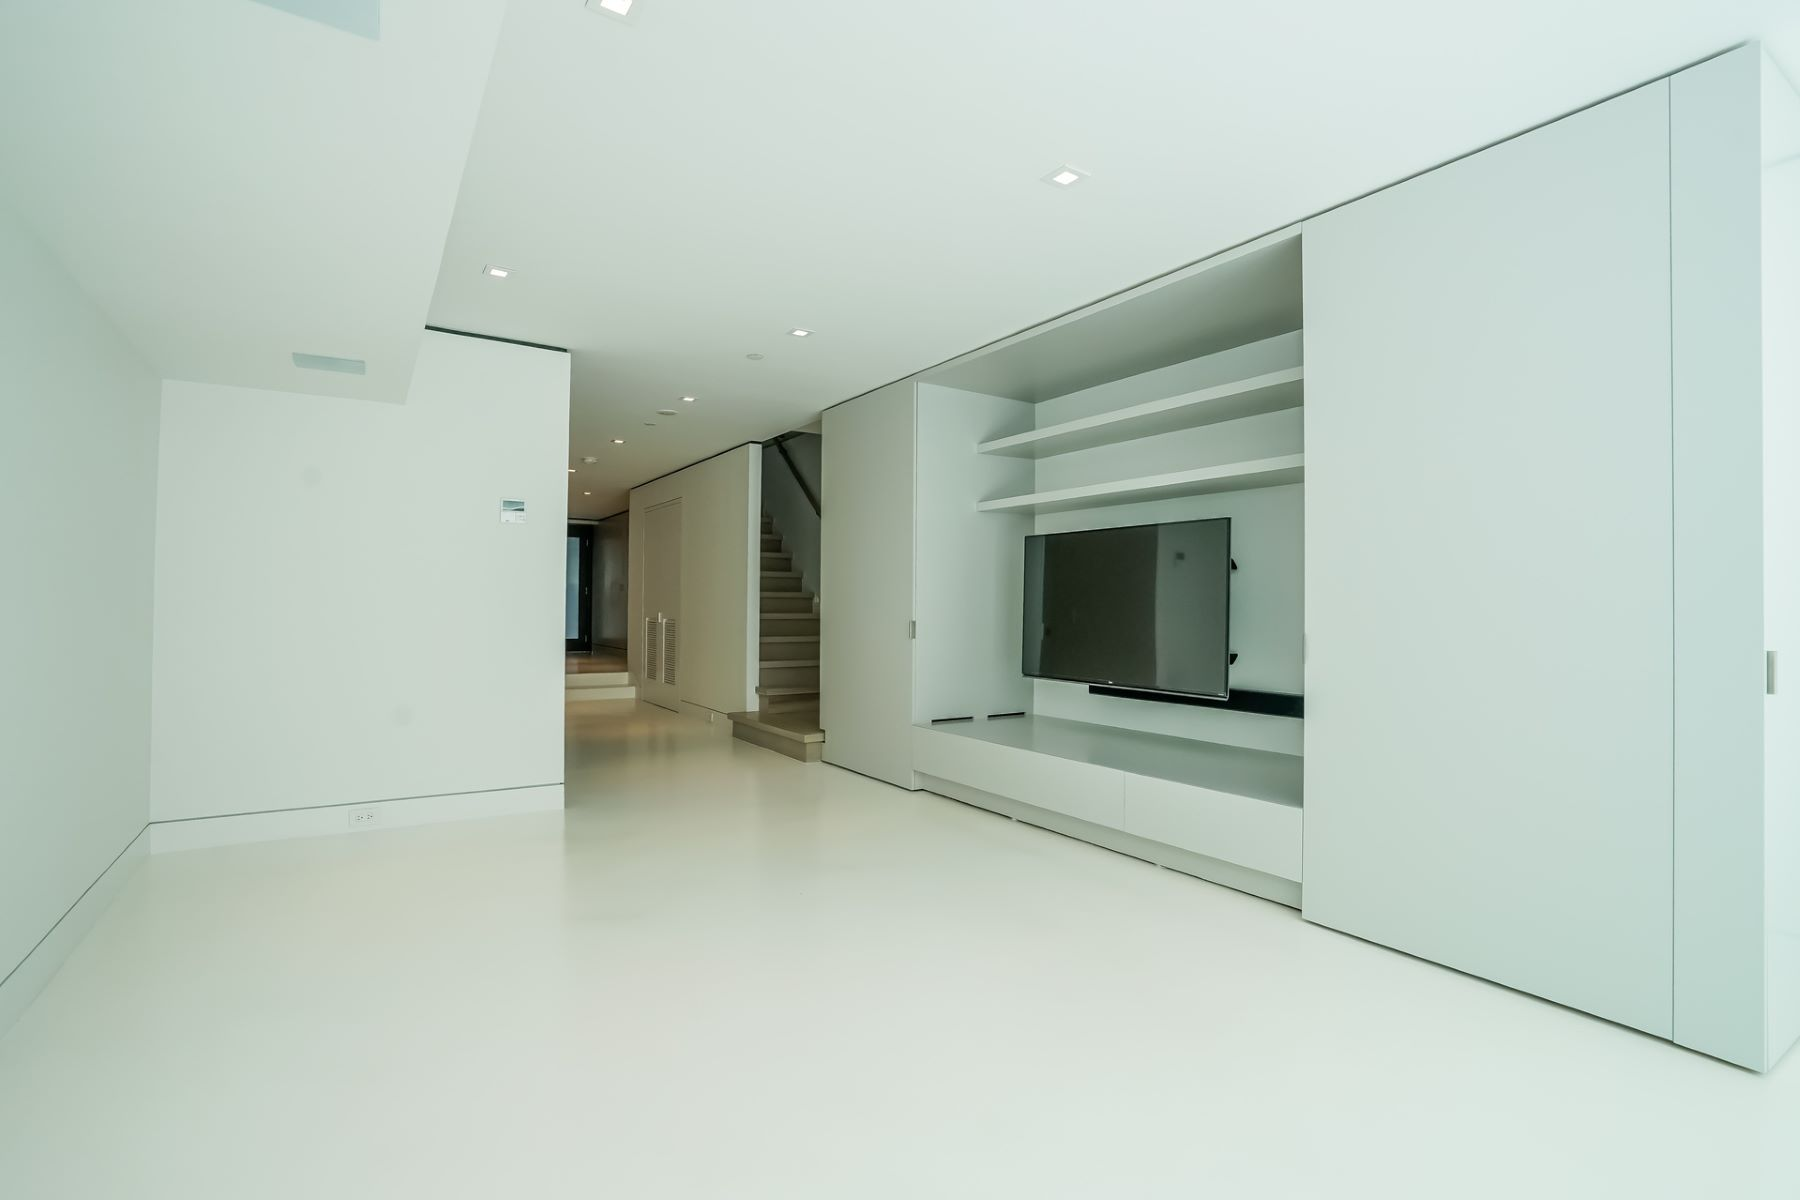 Additional photo for property listing at Magnificent Modern Townhouse in Park Slope 540 4th Street 布鲁克林, 纽约州 11215 美国